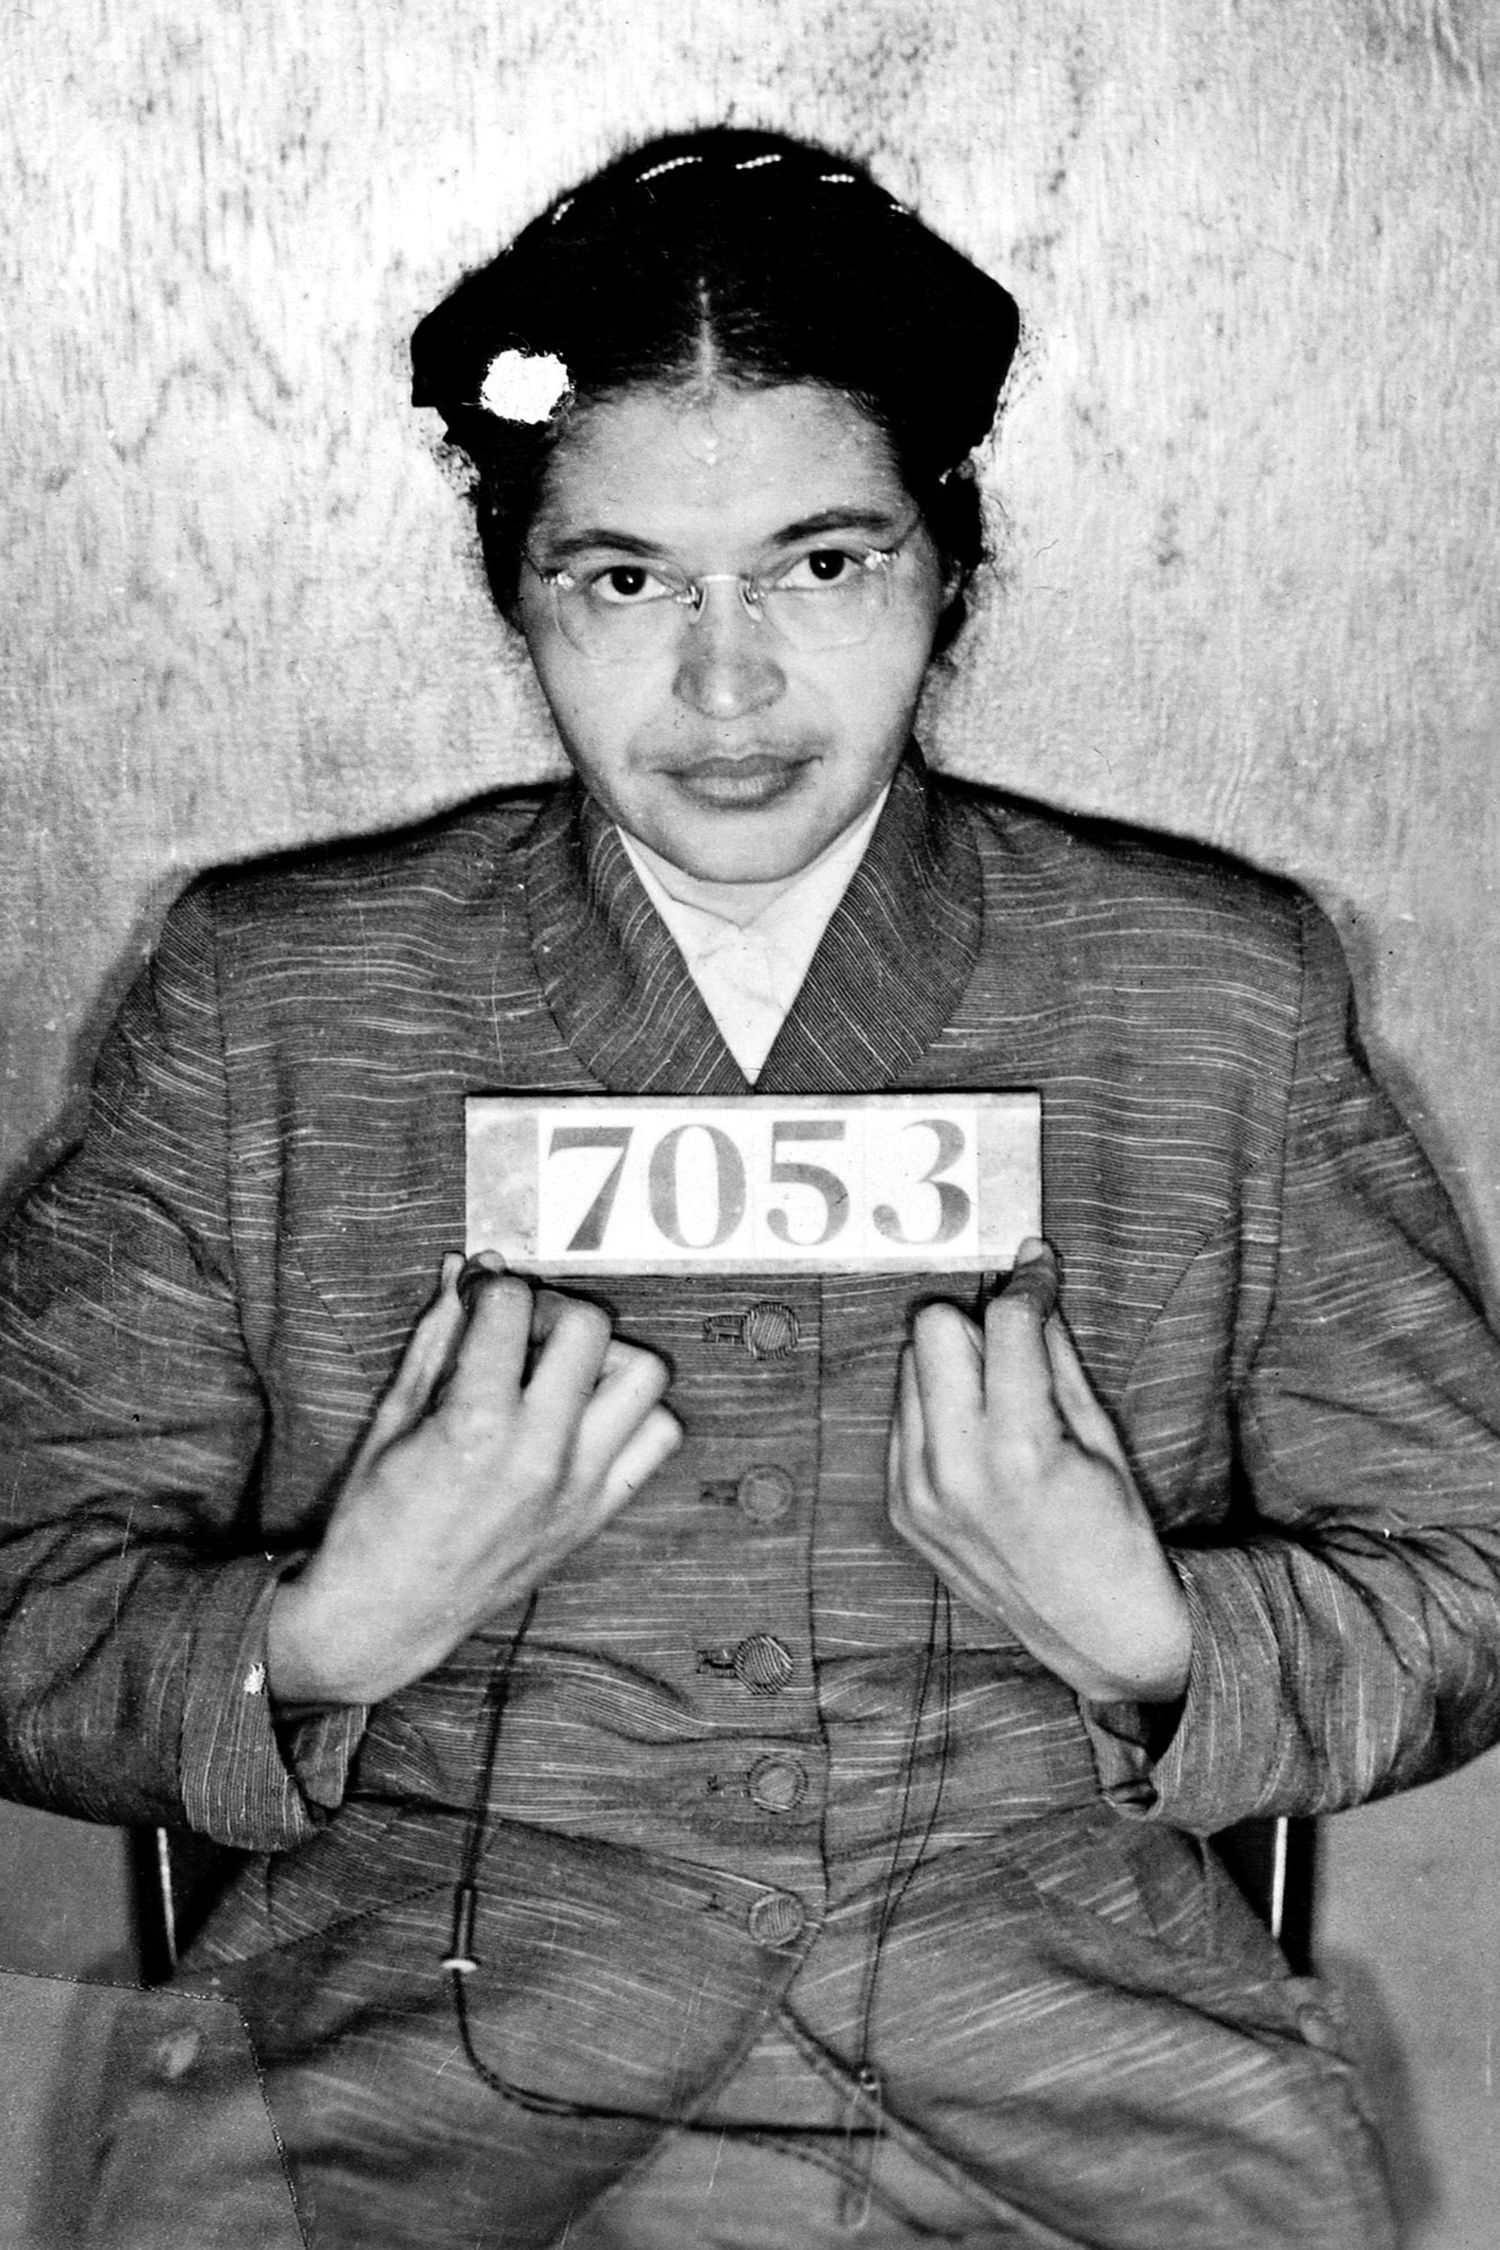 "<p><em data-redactor-tag=""em"" data-verified=""redactor"">Took a stand against segregation</em></p><p>Rosa Parks has become an iconic figure in the civil rights movement for her simple gesture of resistance&nbsp&#x3B;in 1955, when she refused to give up her seat on a bus to a white passenger. The move was a grand statement in Montgomery, Alabama (which was segregated at the time),&nbsp&#x3B;and Parks was arrested for civil disobedience. She became an important symbol of desegregation and obedient protest,&nbsp&#x3B;and her role in the Montgomery Bus Boycott was essential to its success.&nbsp&#x3B;</p>"